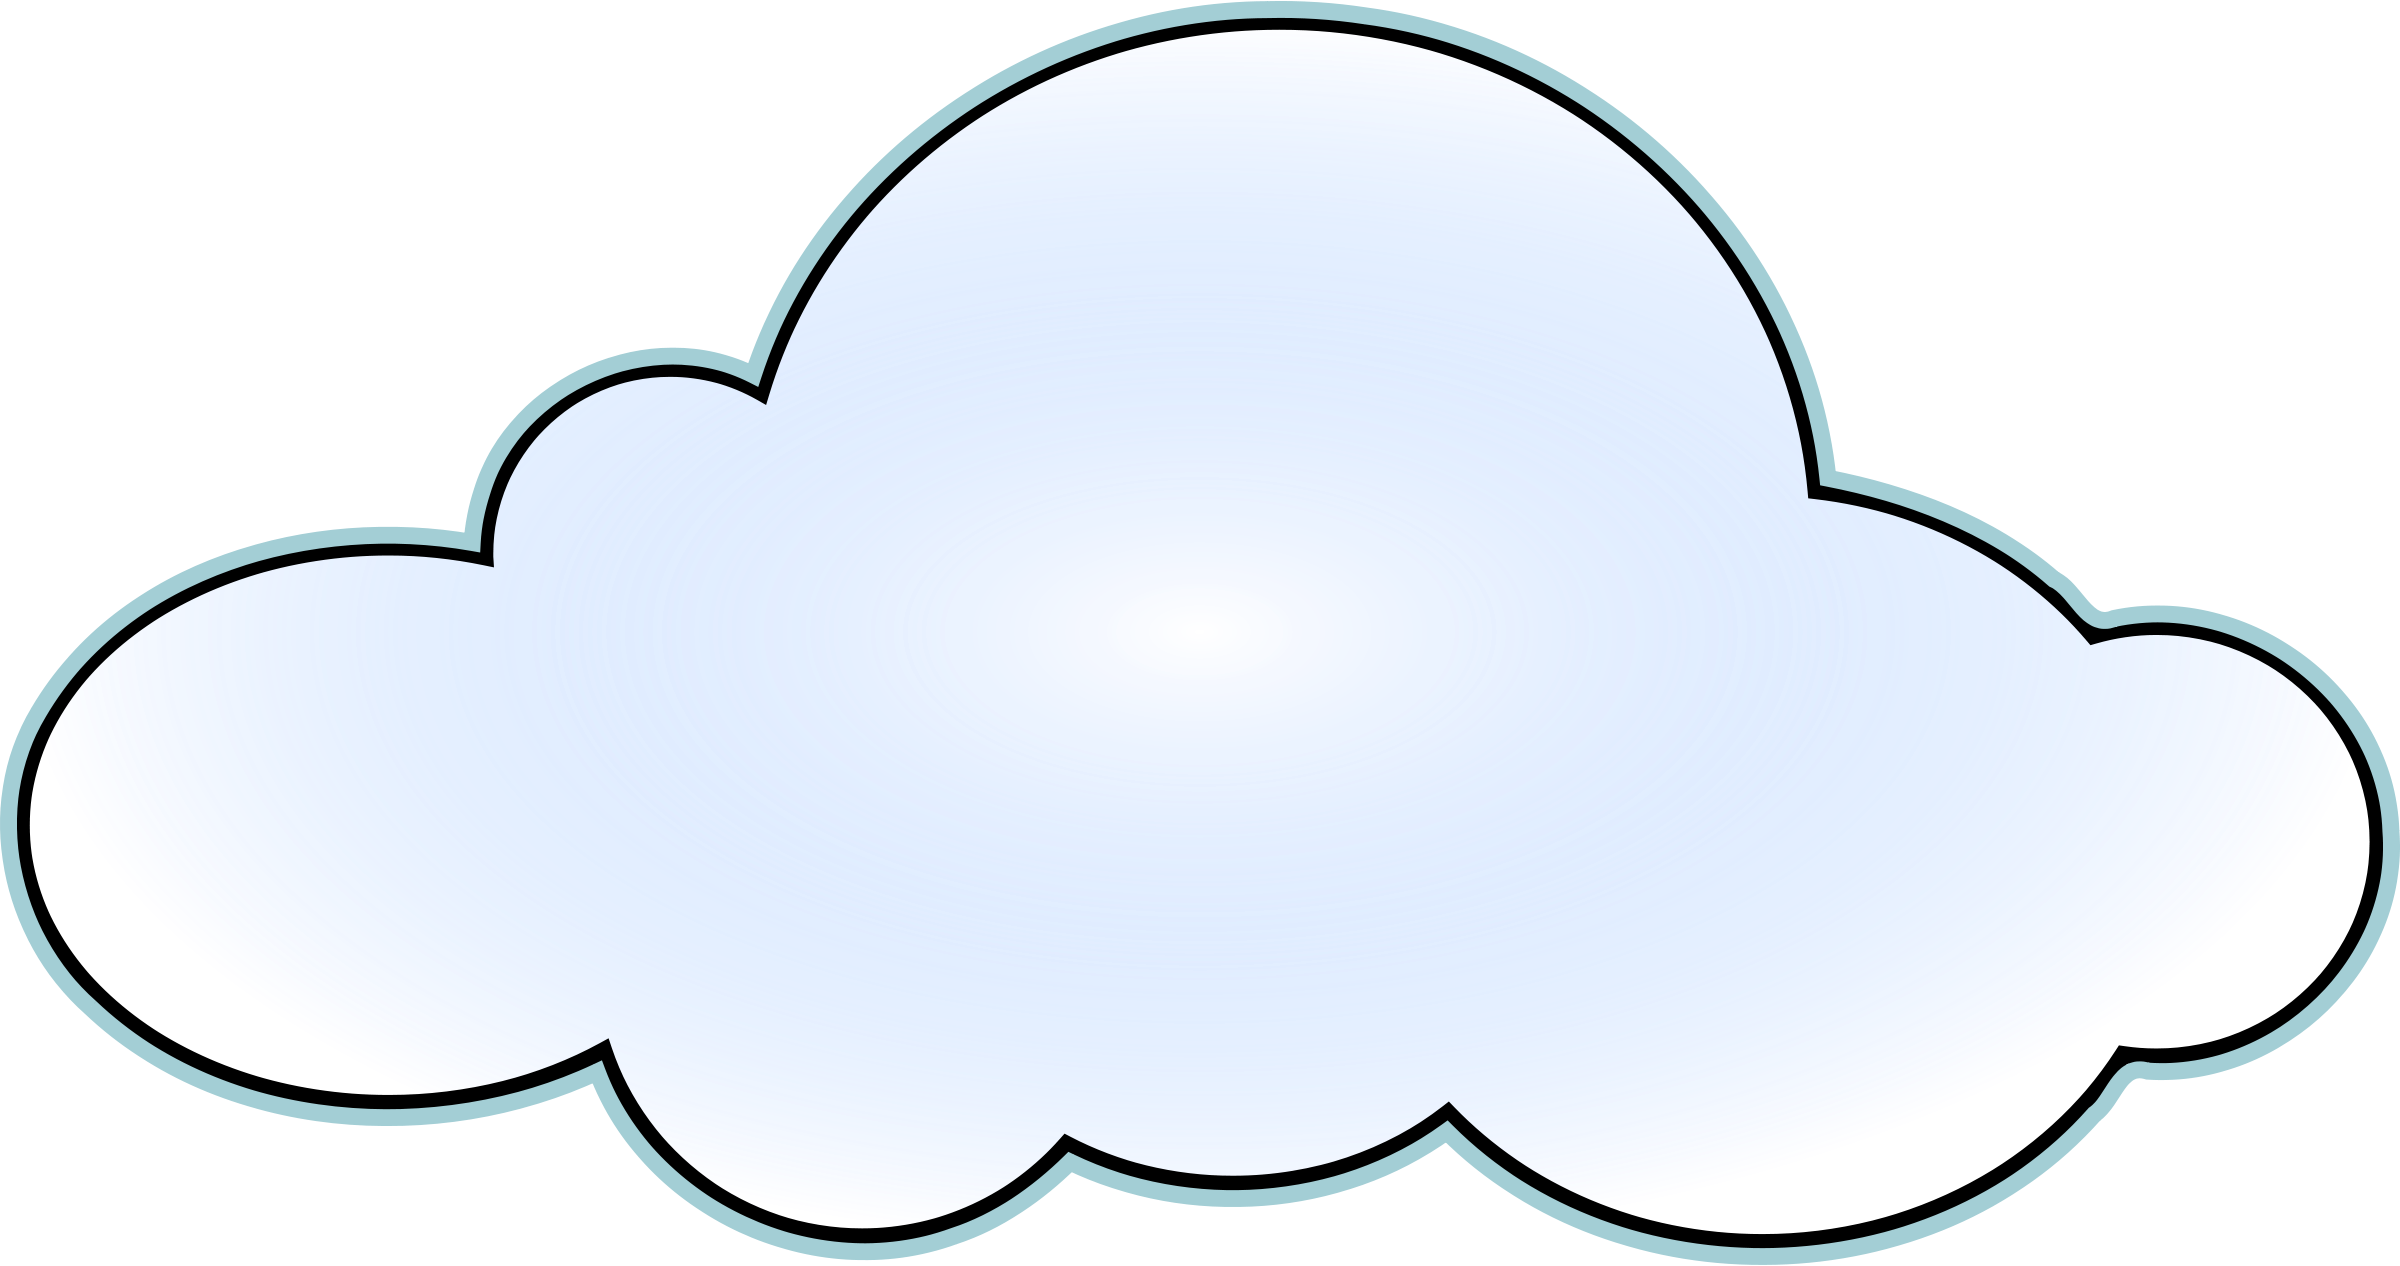 Cartoon clouds png. Collection of free clouding